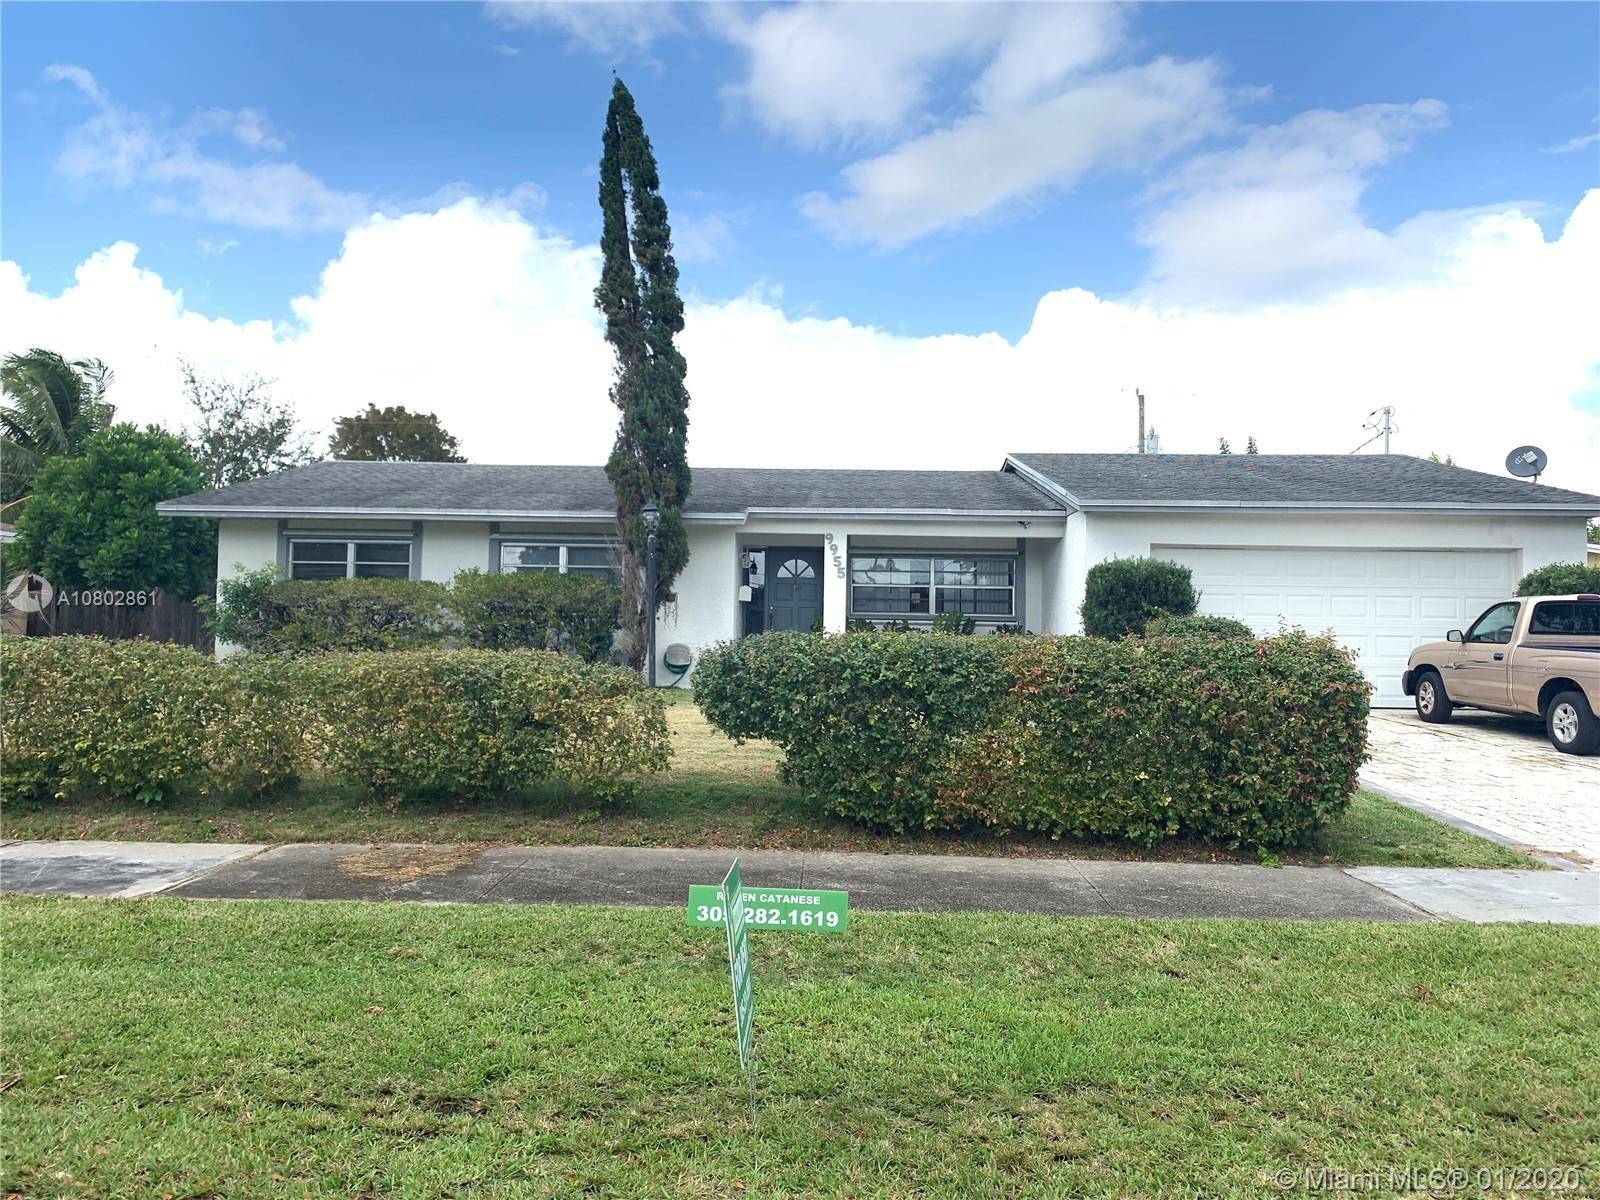 9955 SW 161st St, Miami, Florida 33157, 3 Bedrooms Bedrooms, ,2 BathroomsBathrooms,Residential Lease,For Rent,9955 SW 161st St,A10802861